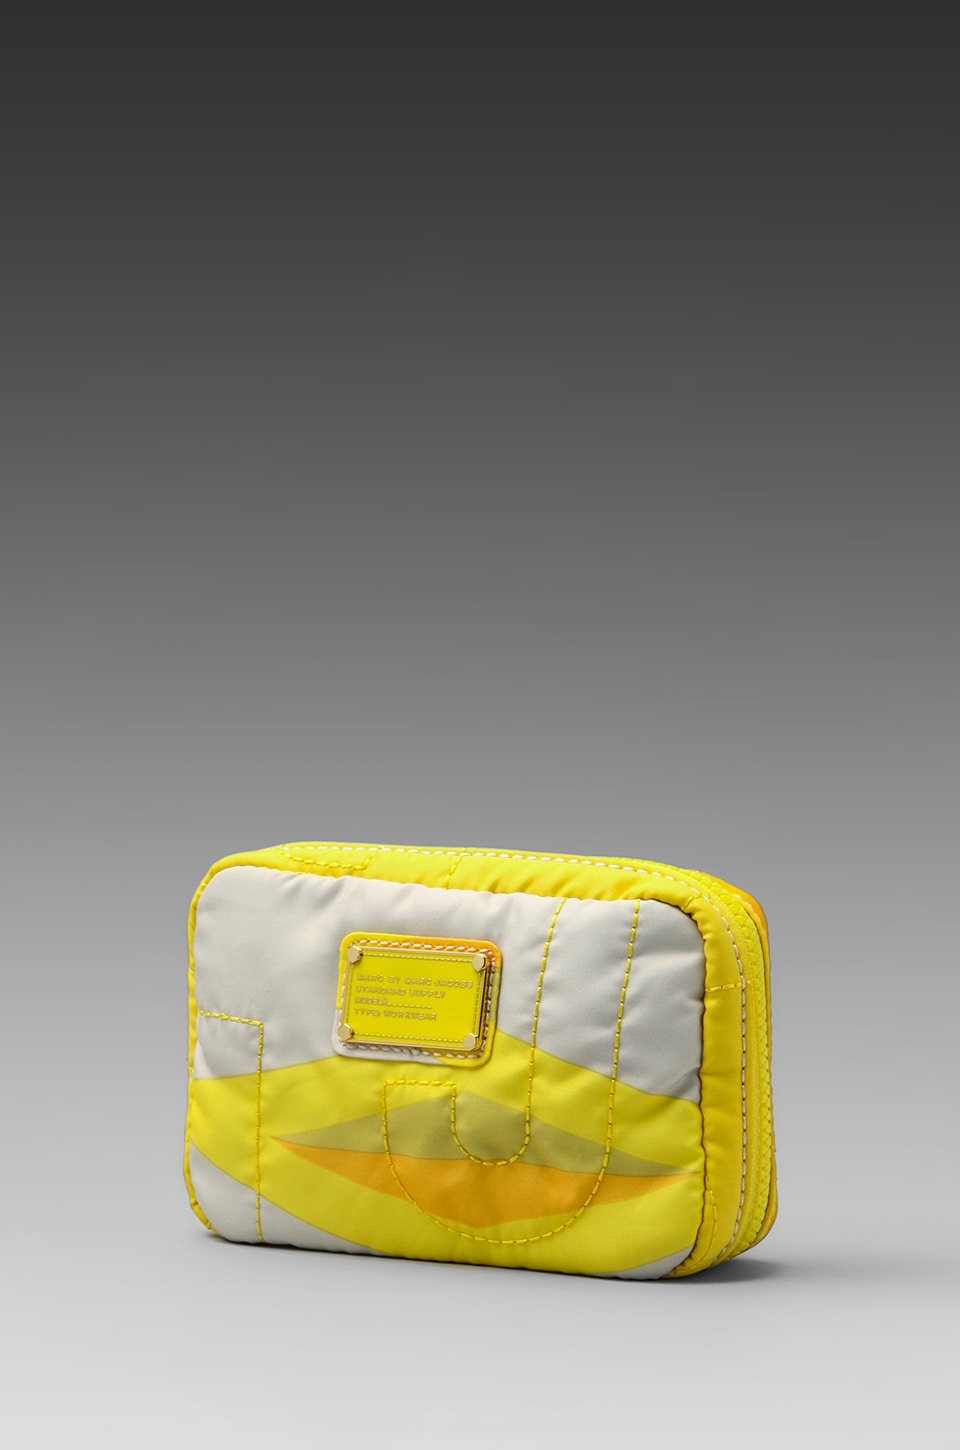 Marc by Marc Jacobs Pretty Nylon Haley Diamond Compact Travel Cosmetic Bag in Lemon Custard Multi